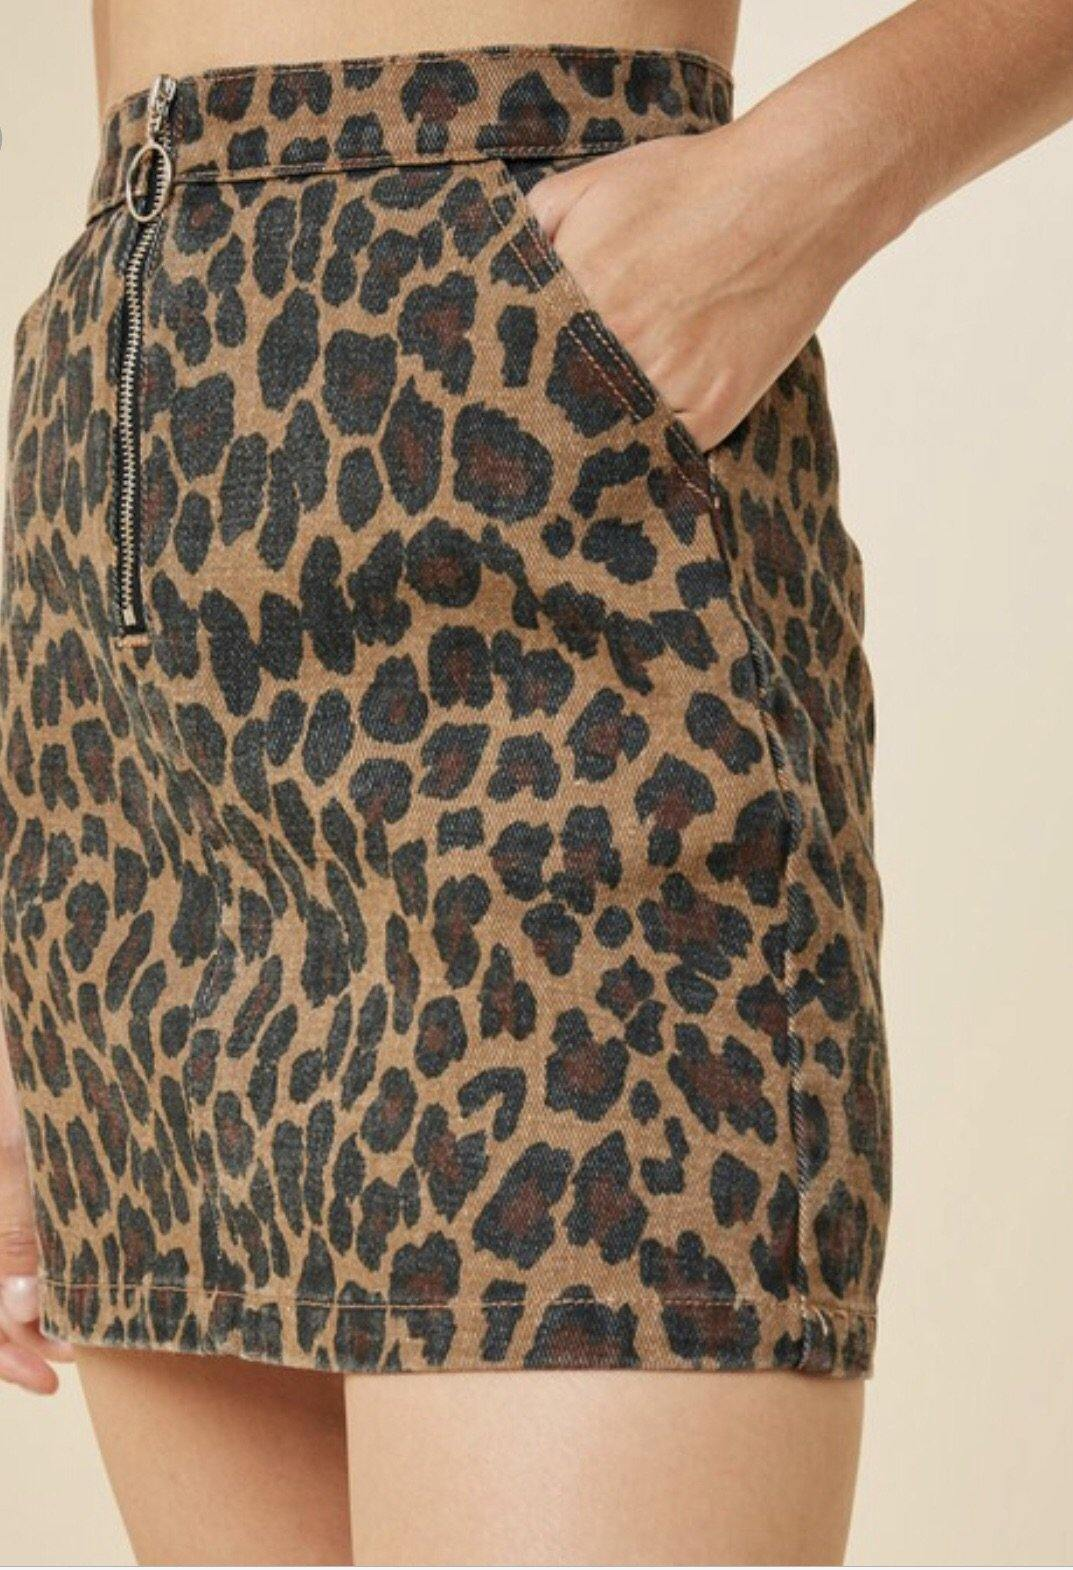 LILLIANA LEOPARD PRINT SKIRT - elbie boutique, LLC